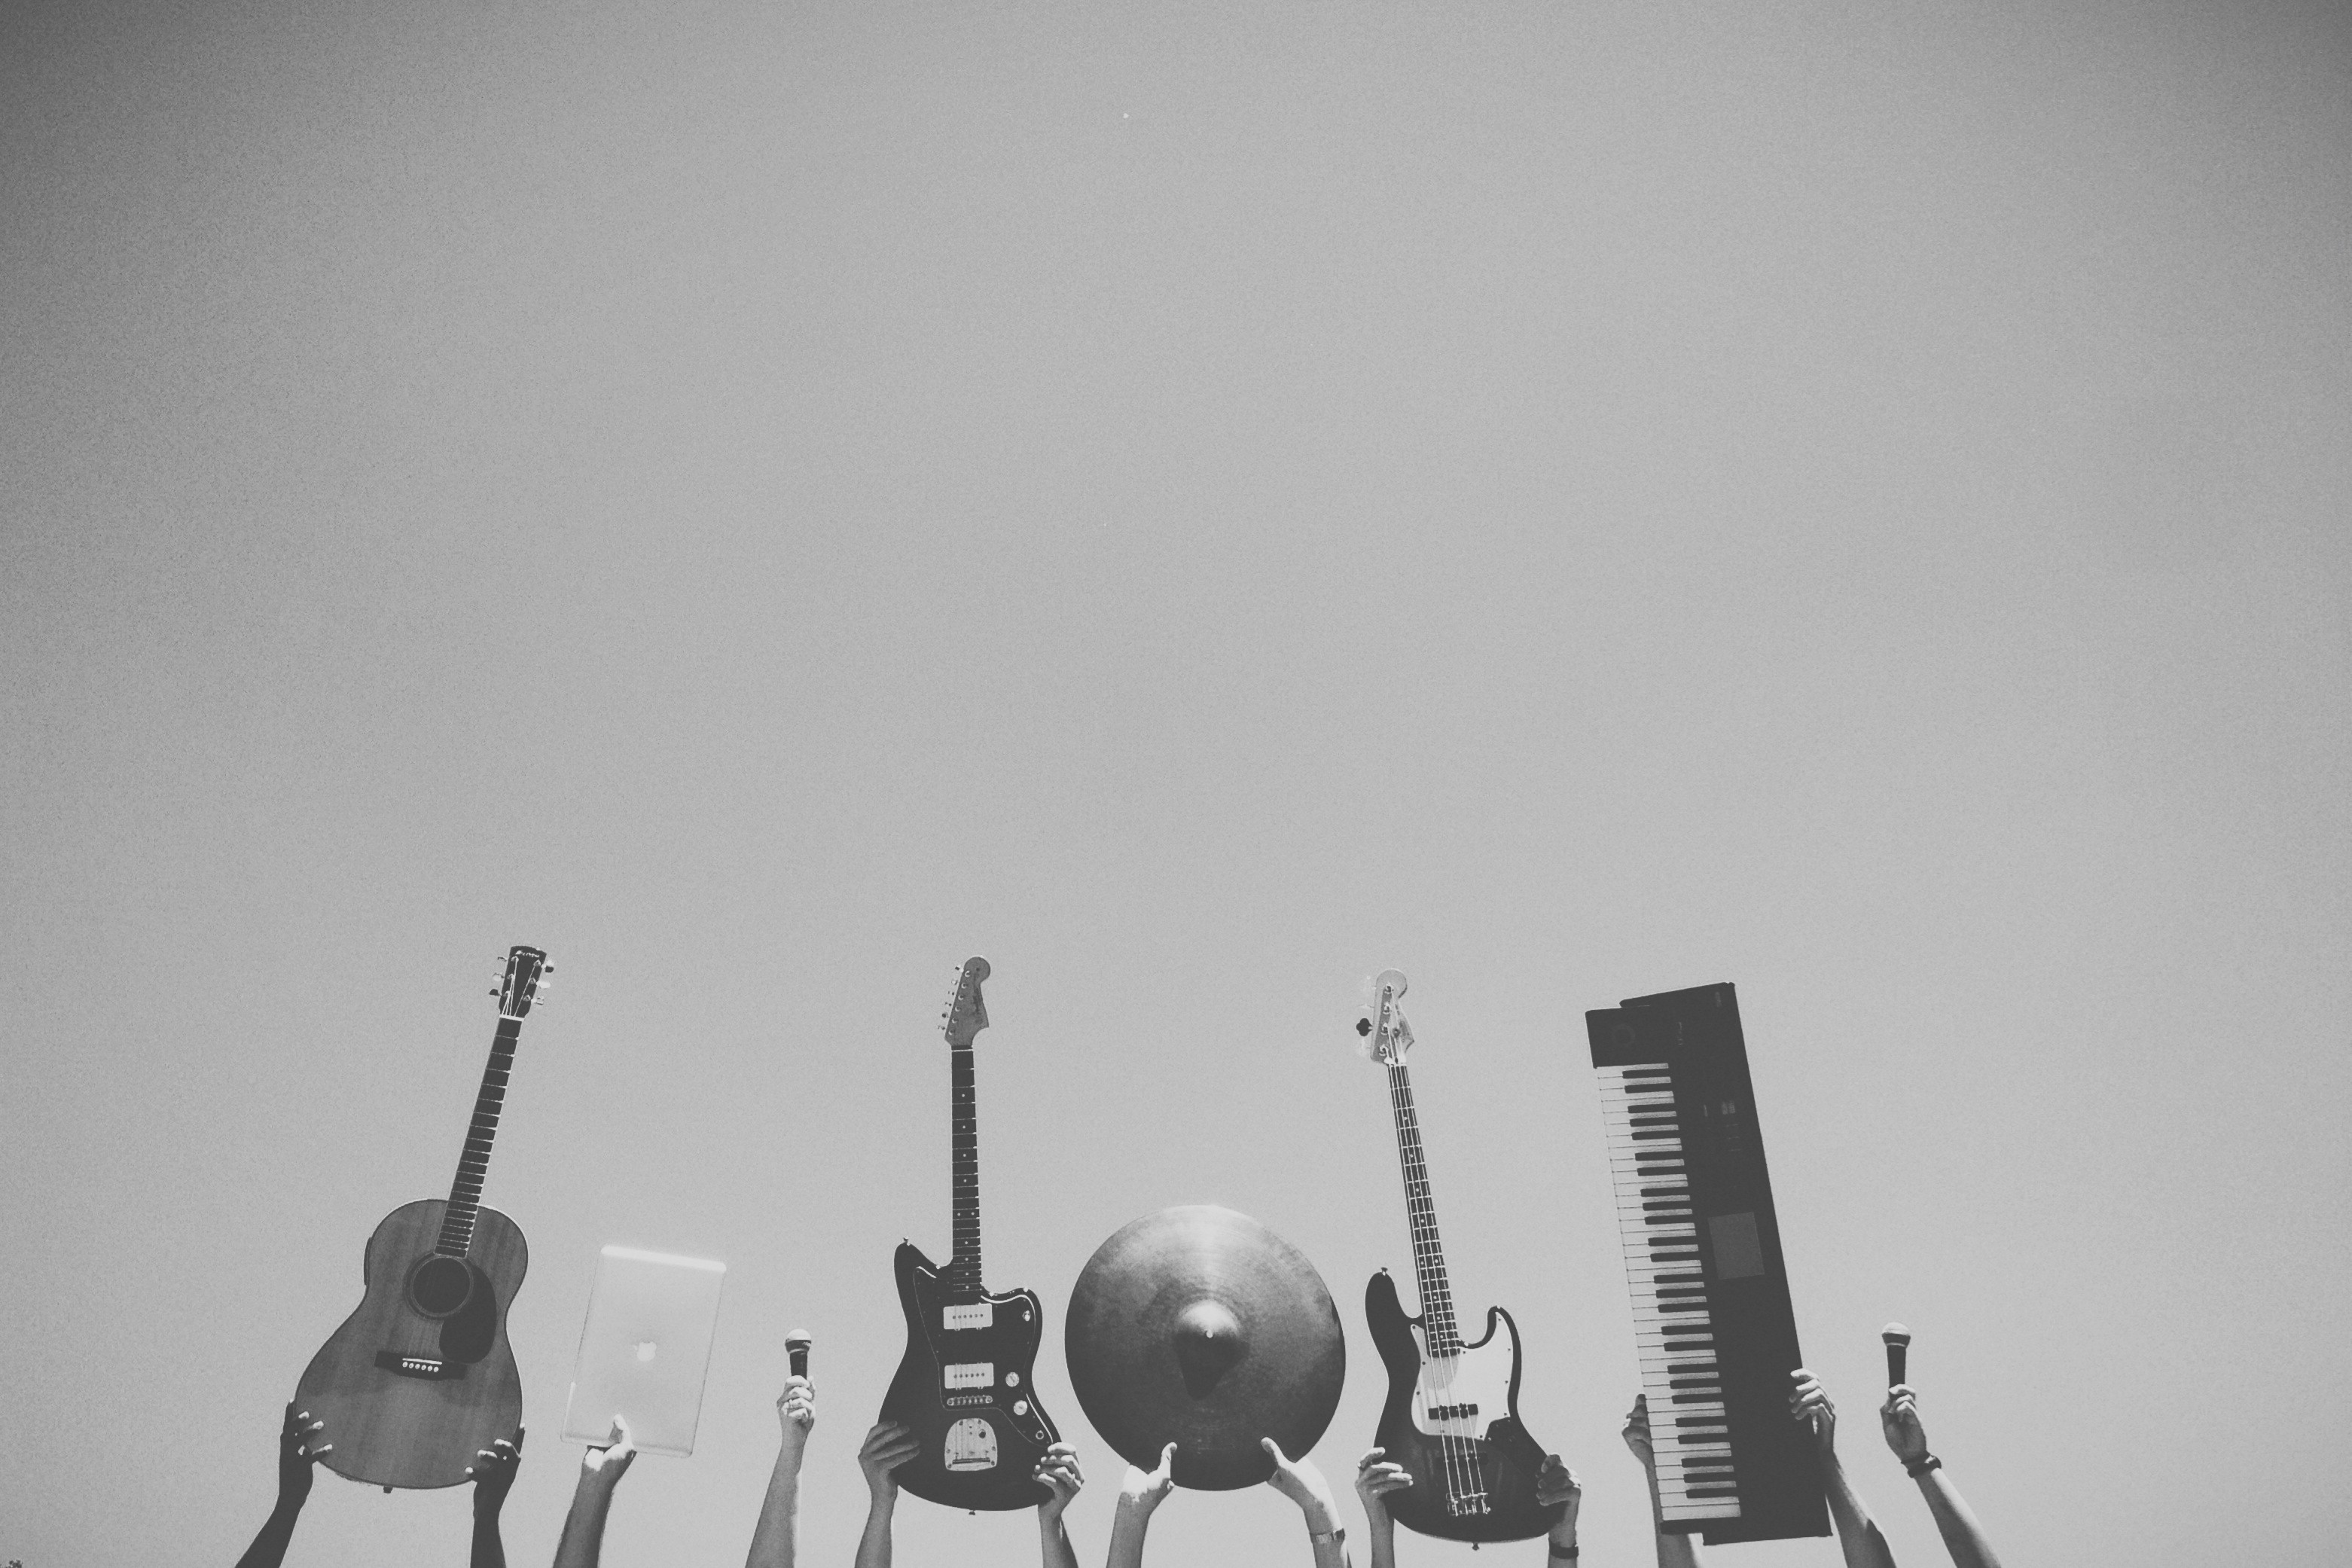 Guitar and music instruments arranged in a row.